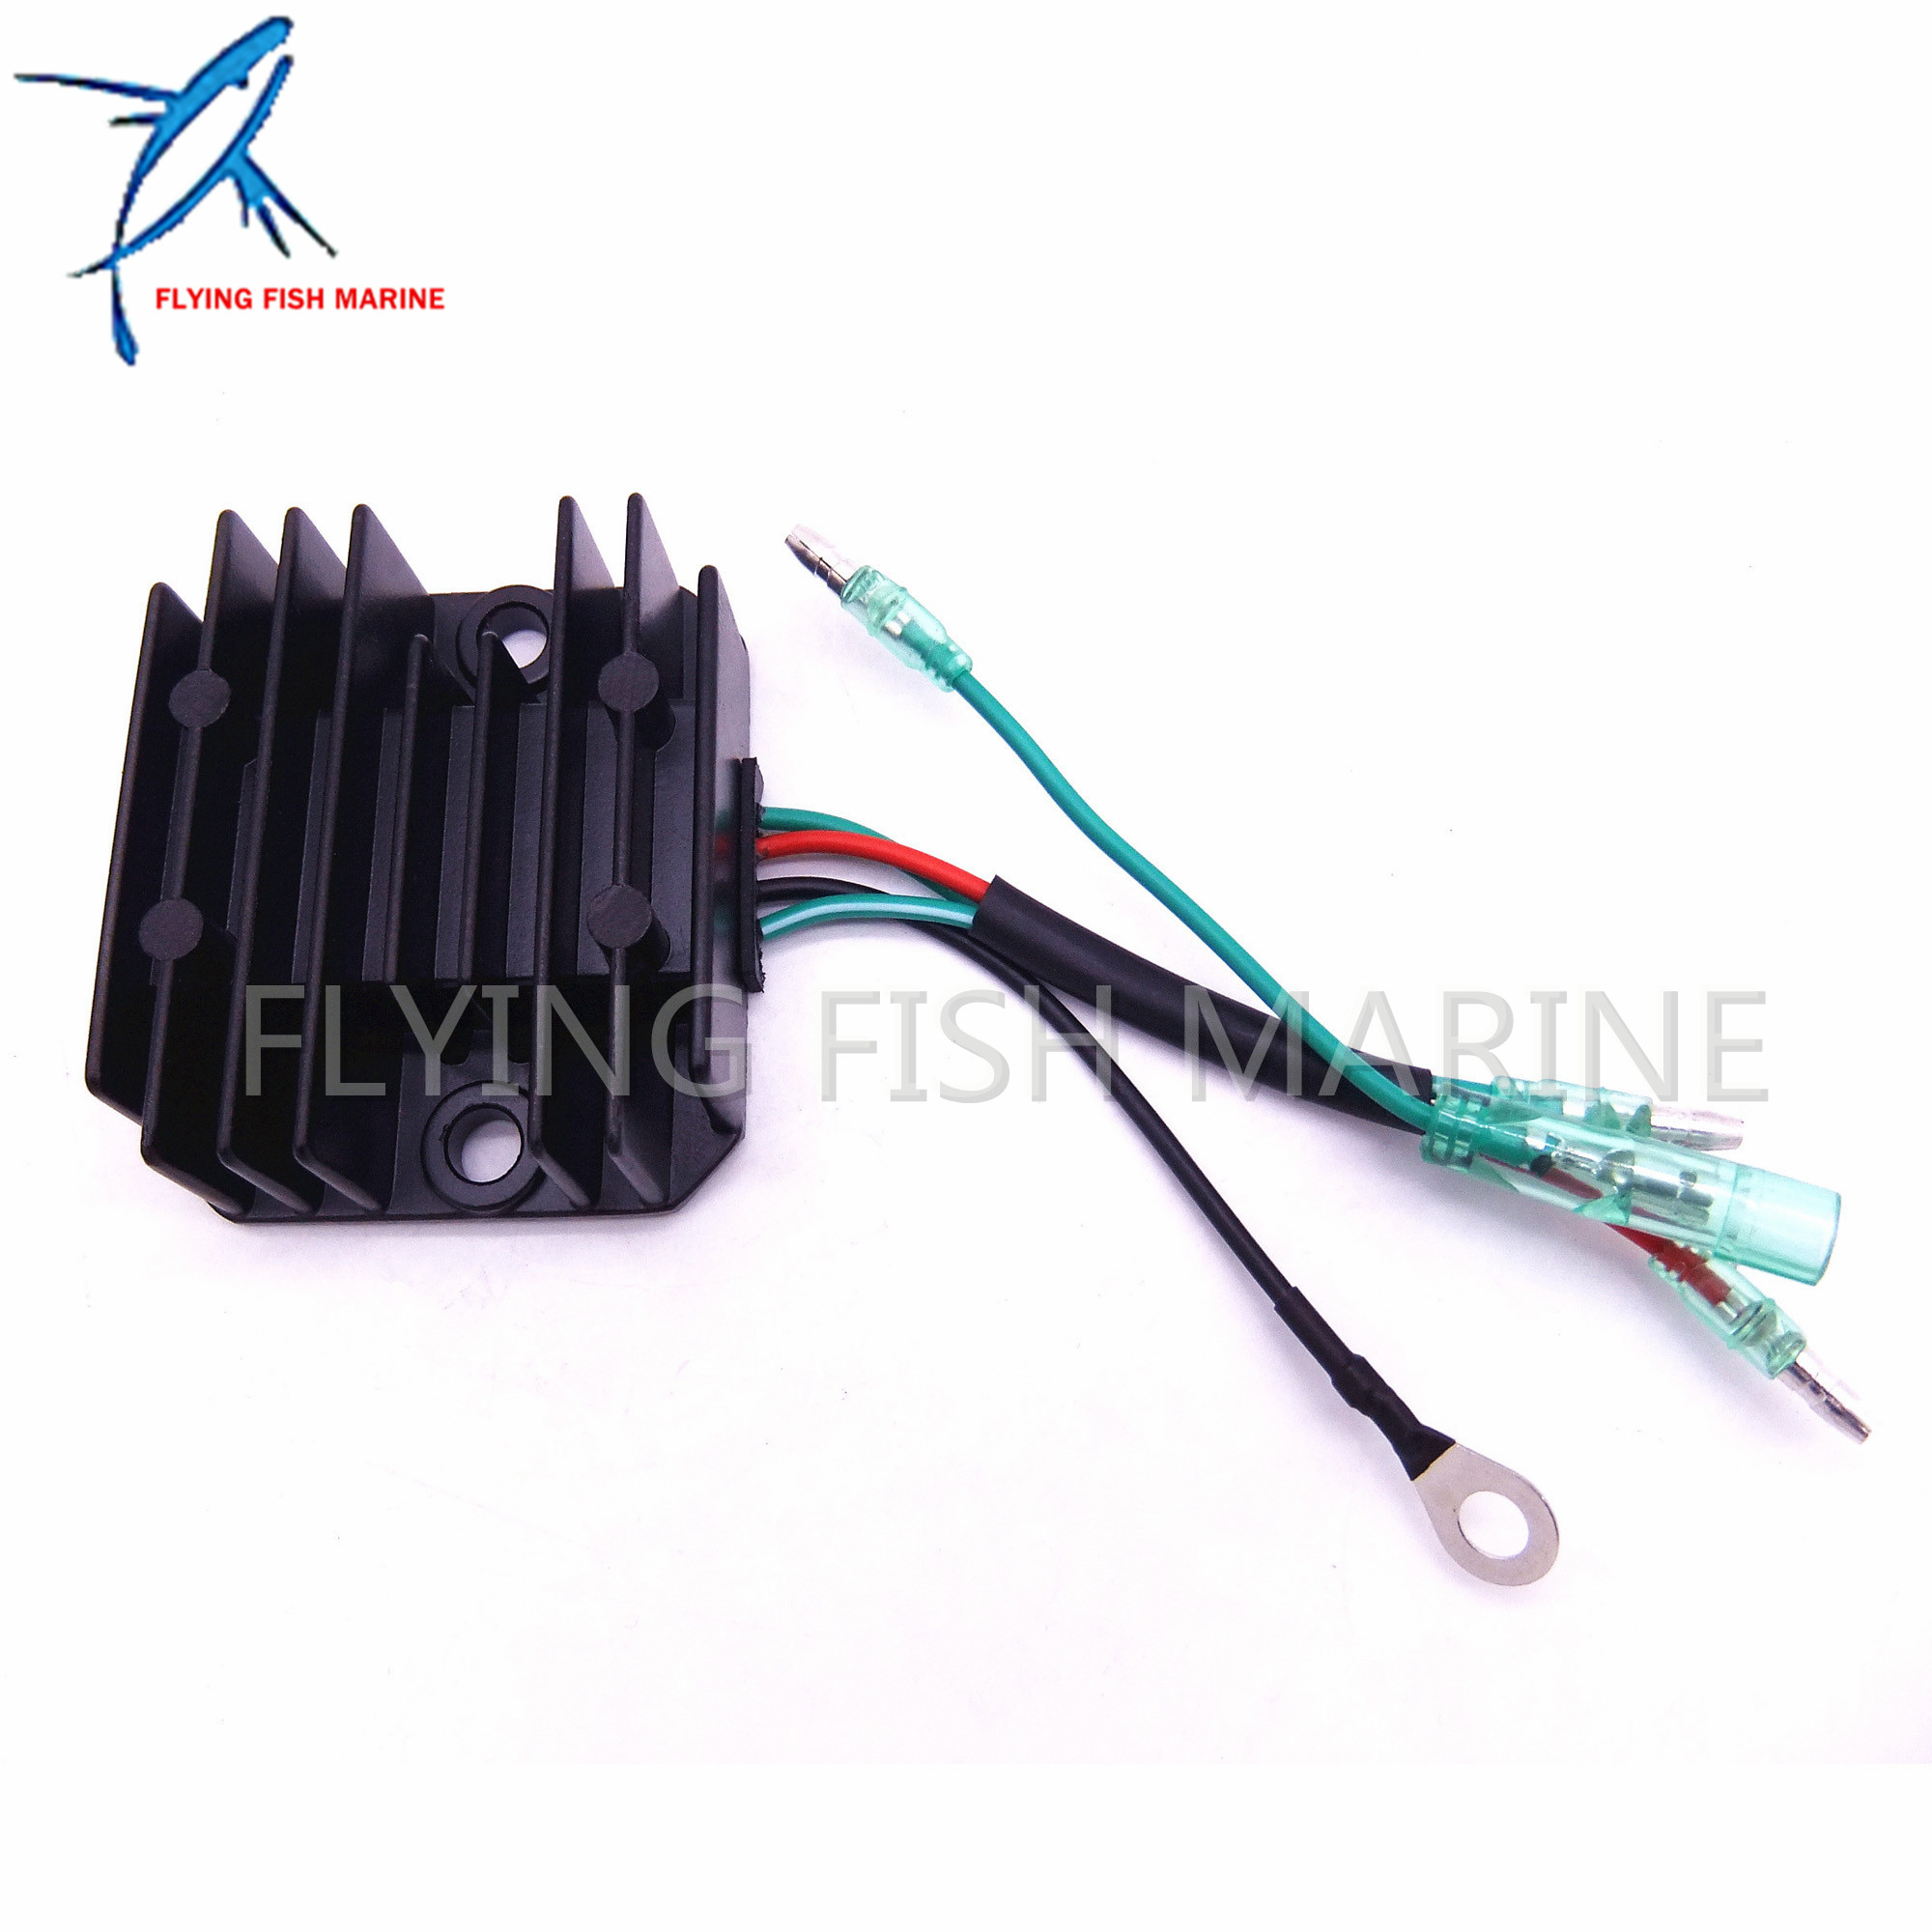 Boat Motor Rectifier & Regulator Assy T85-05030300 for Parsun HDX F15A F20A  T75 T85 T90 Outboard Engine